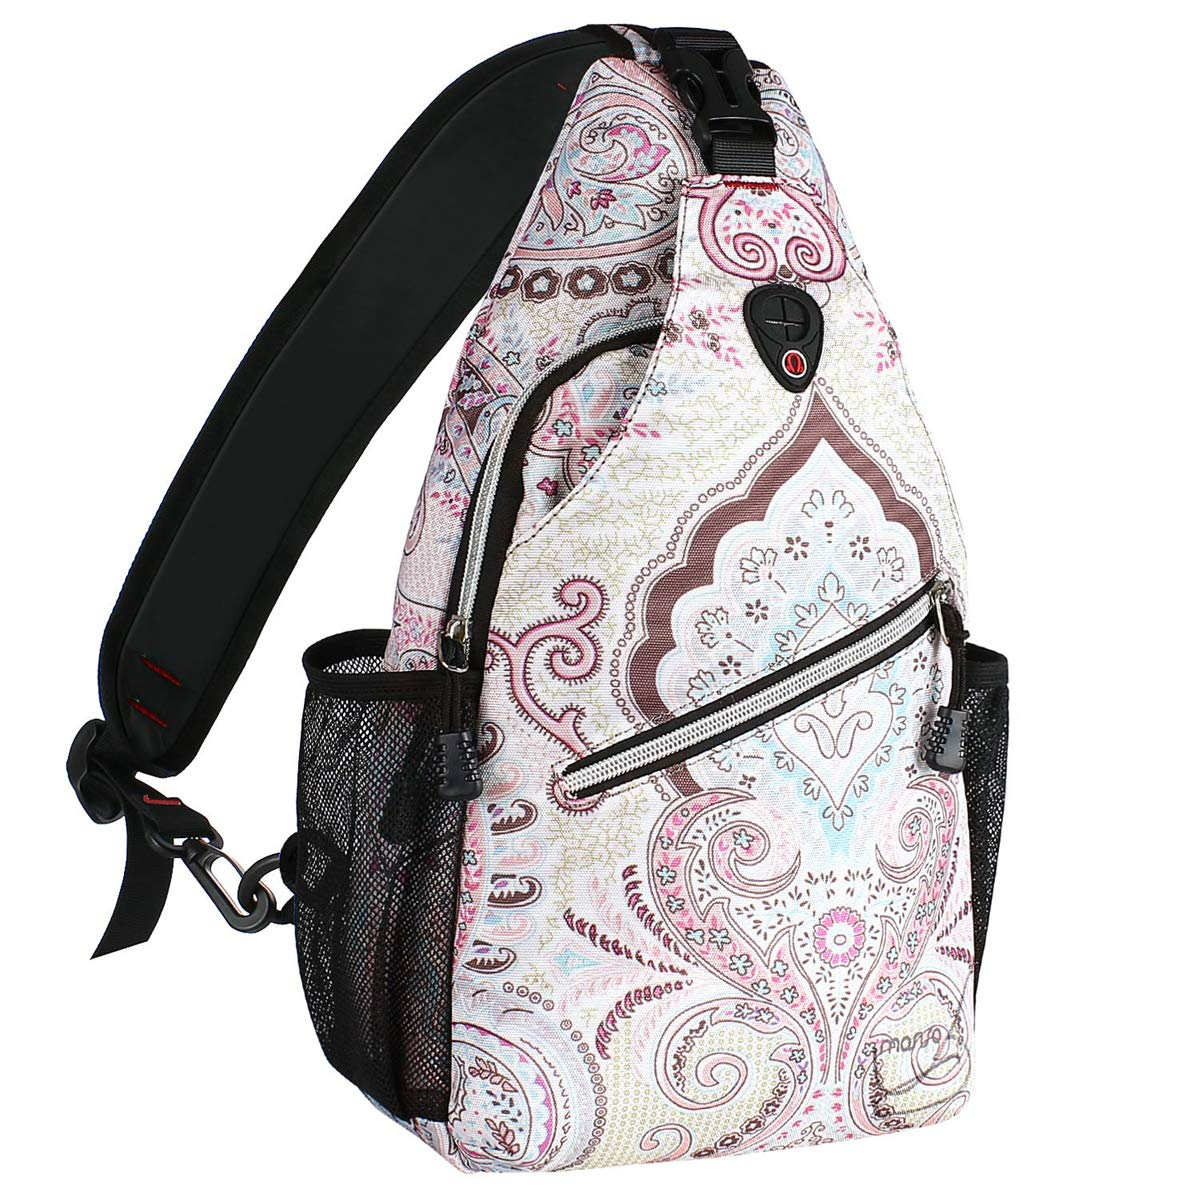 MOSISO Sling Backpack, Outdoor Hiking Daypack Shoulder Bag with Printed Pattern